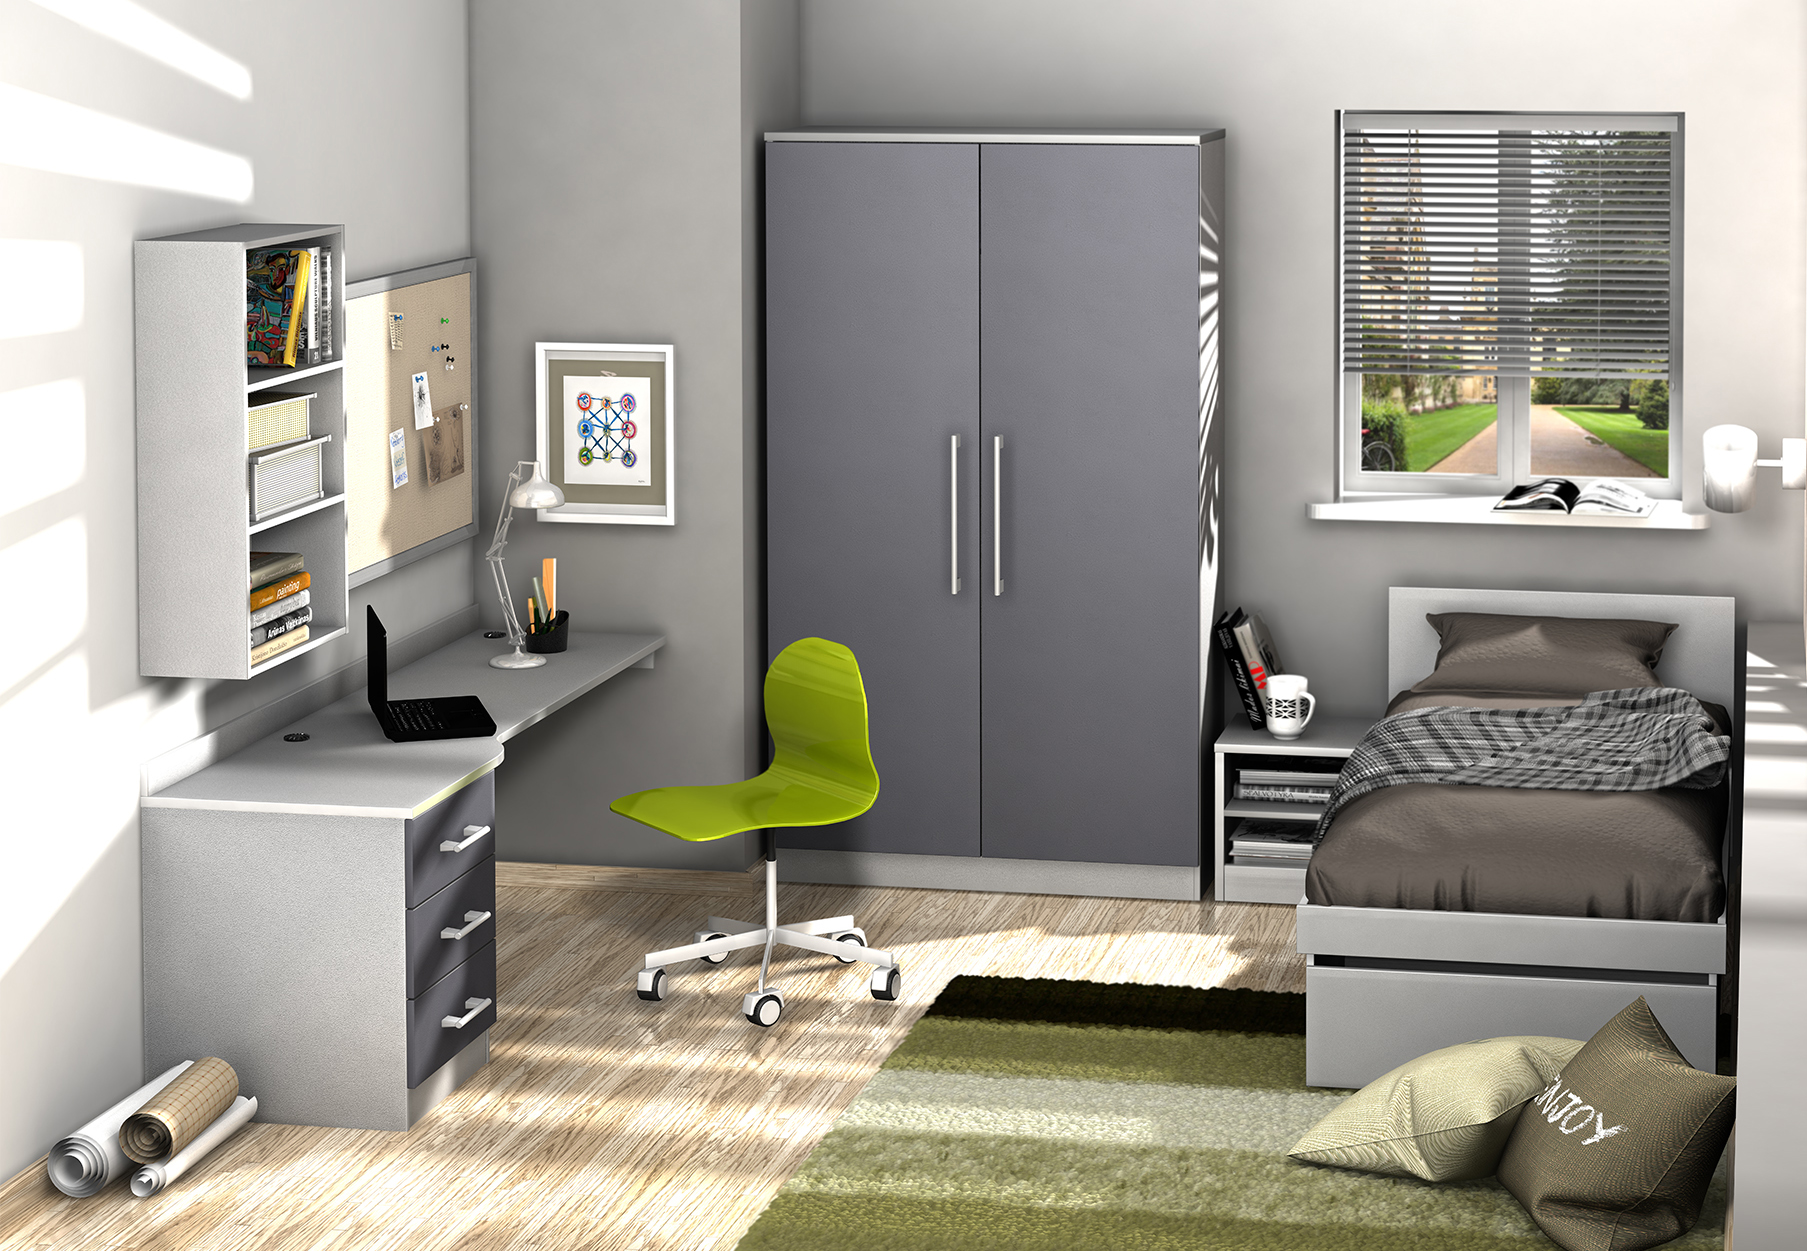 Come Back FURNITURE FOR ACCOMMODATION SECTOR